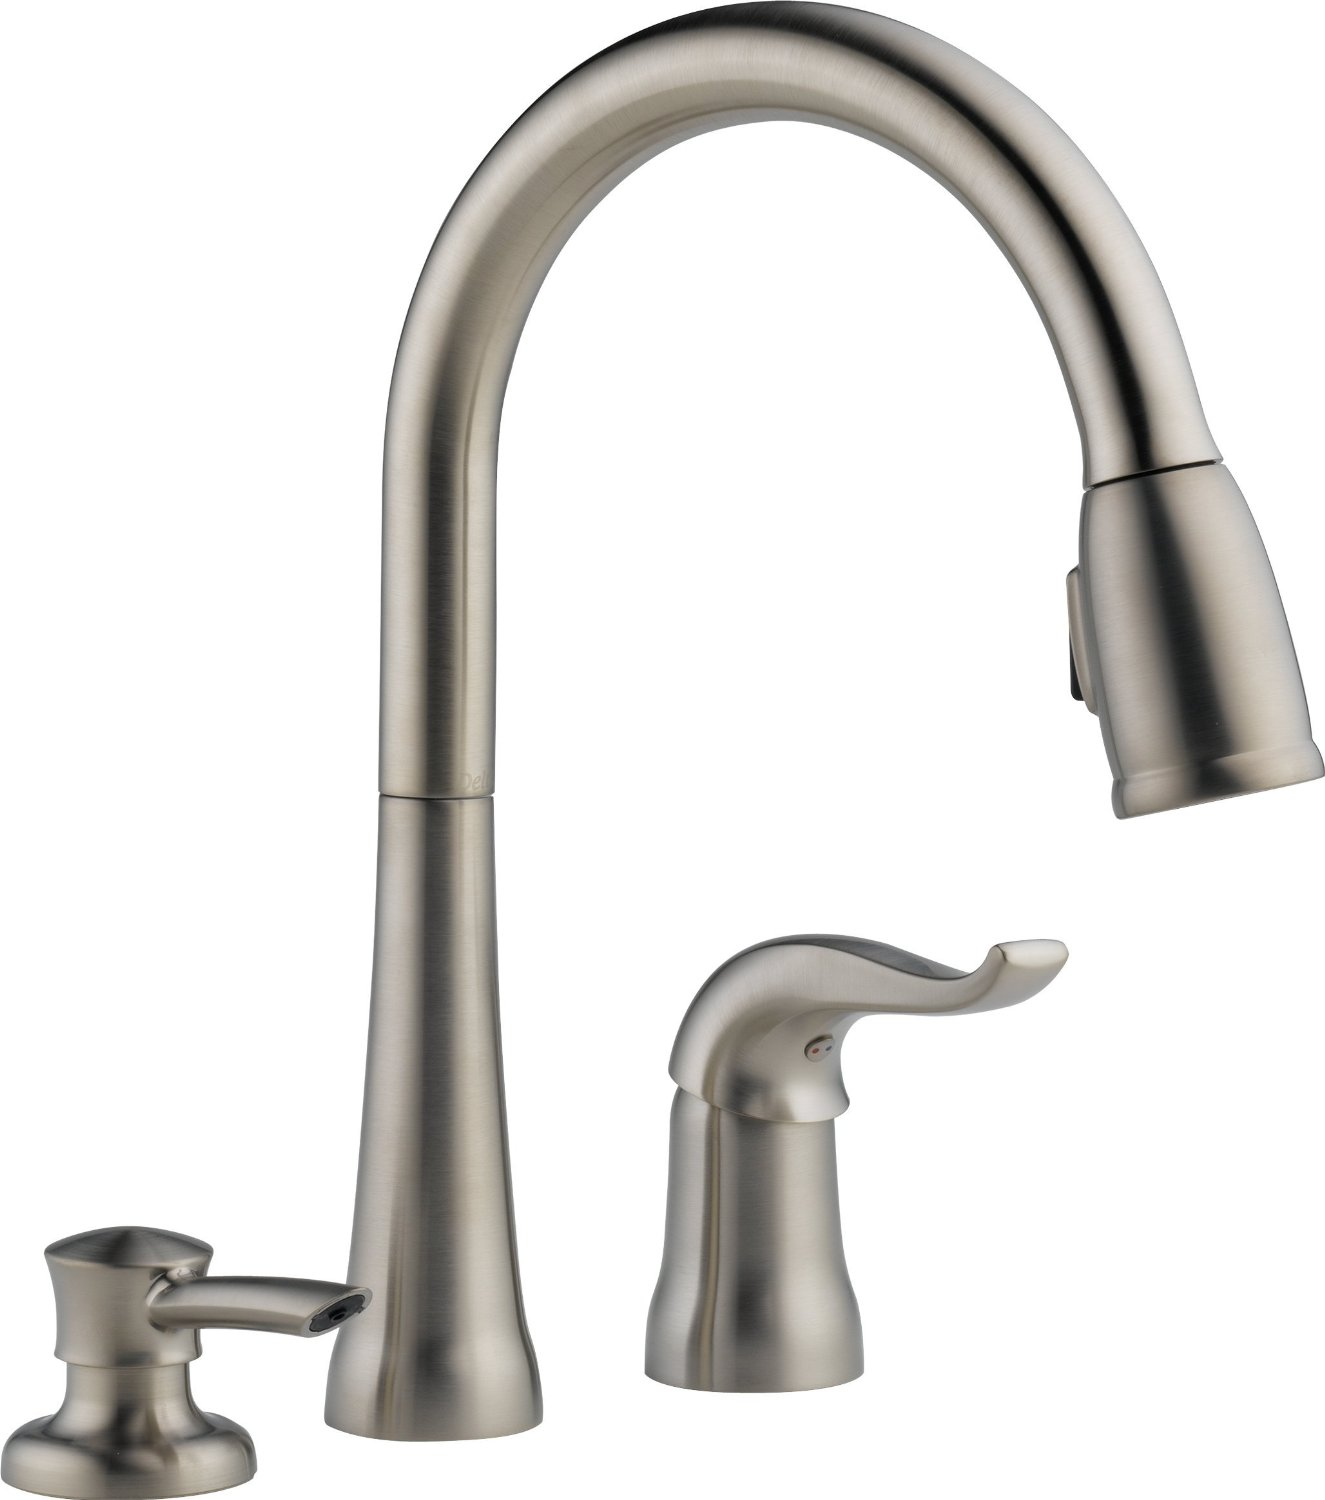 Impressive delta cassidy kitchen faucet for kitchen faucet ideas with delta single handle kitchen faucet with spray